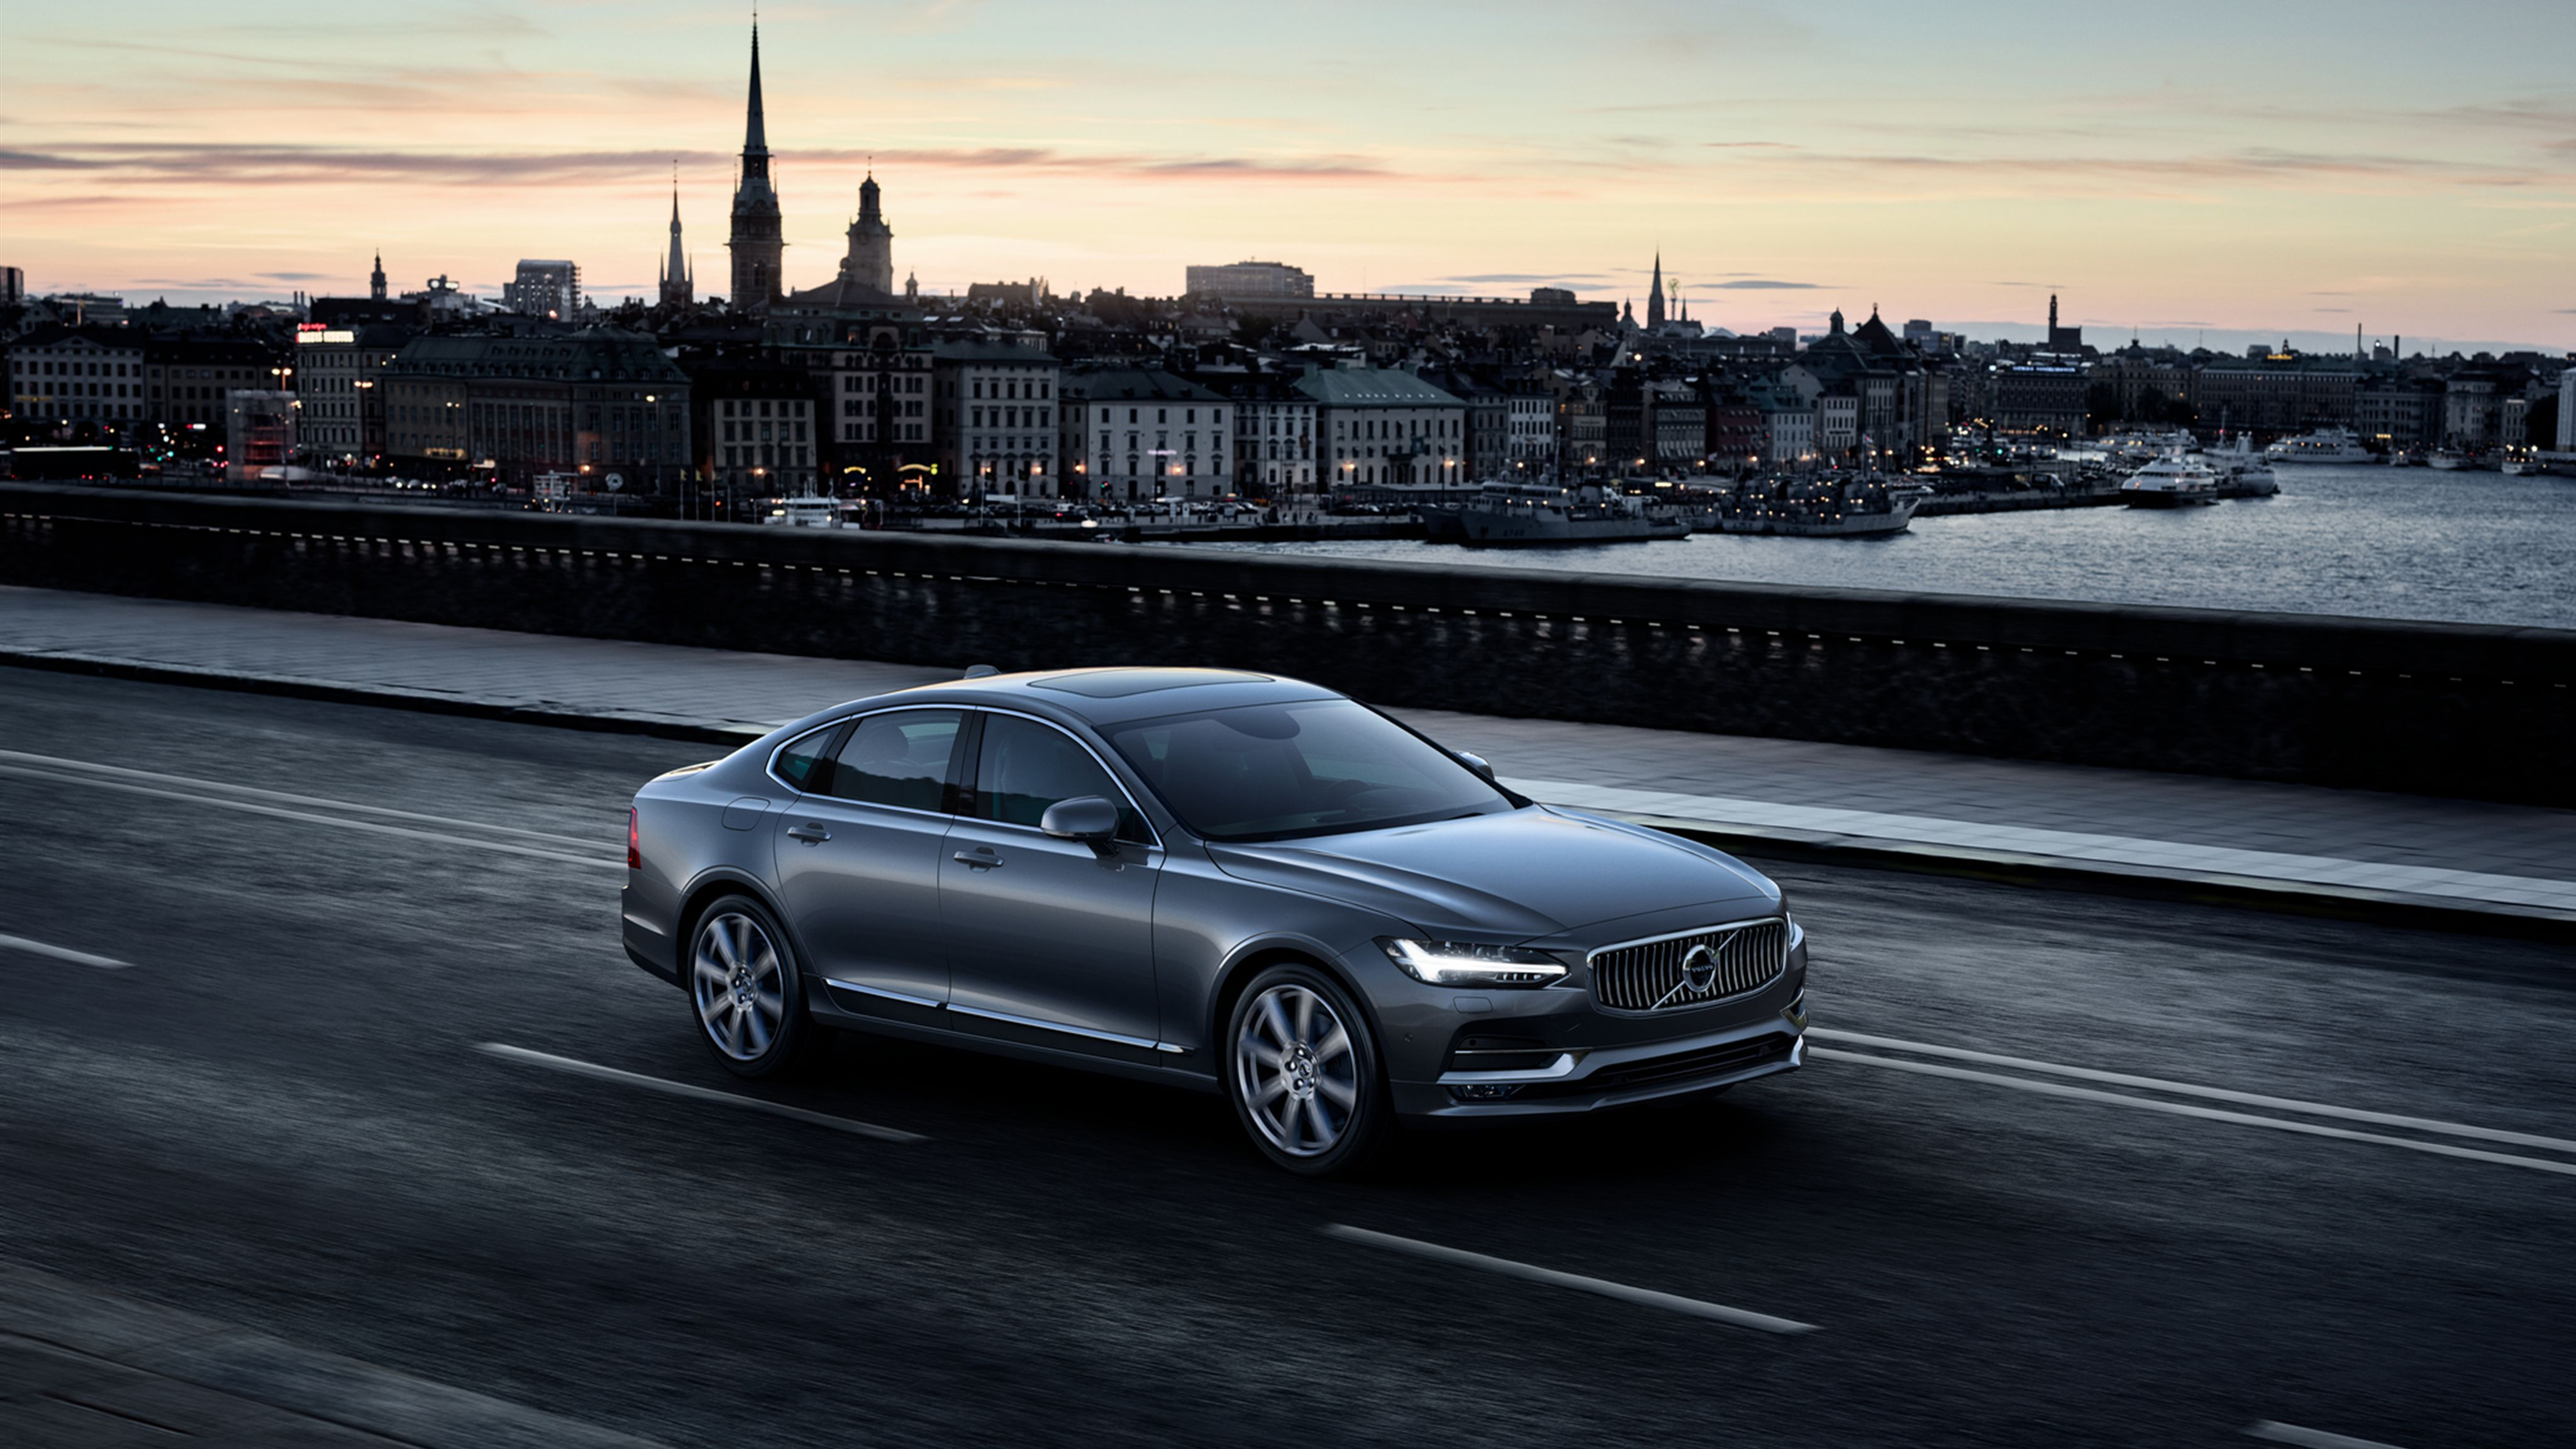 Volvo S90 Luxury Sedan Volvo Cars Volvo s90, Volvo